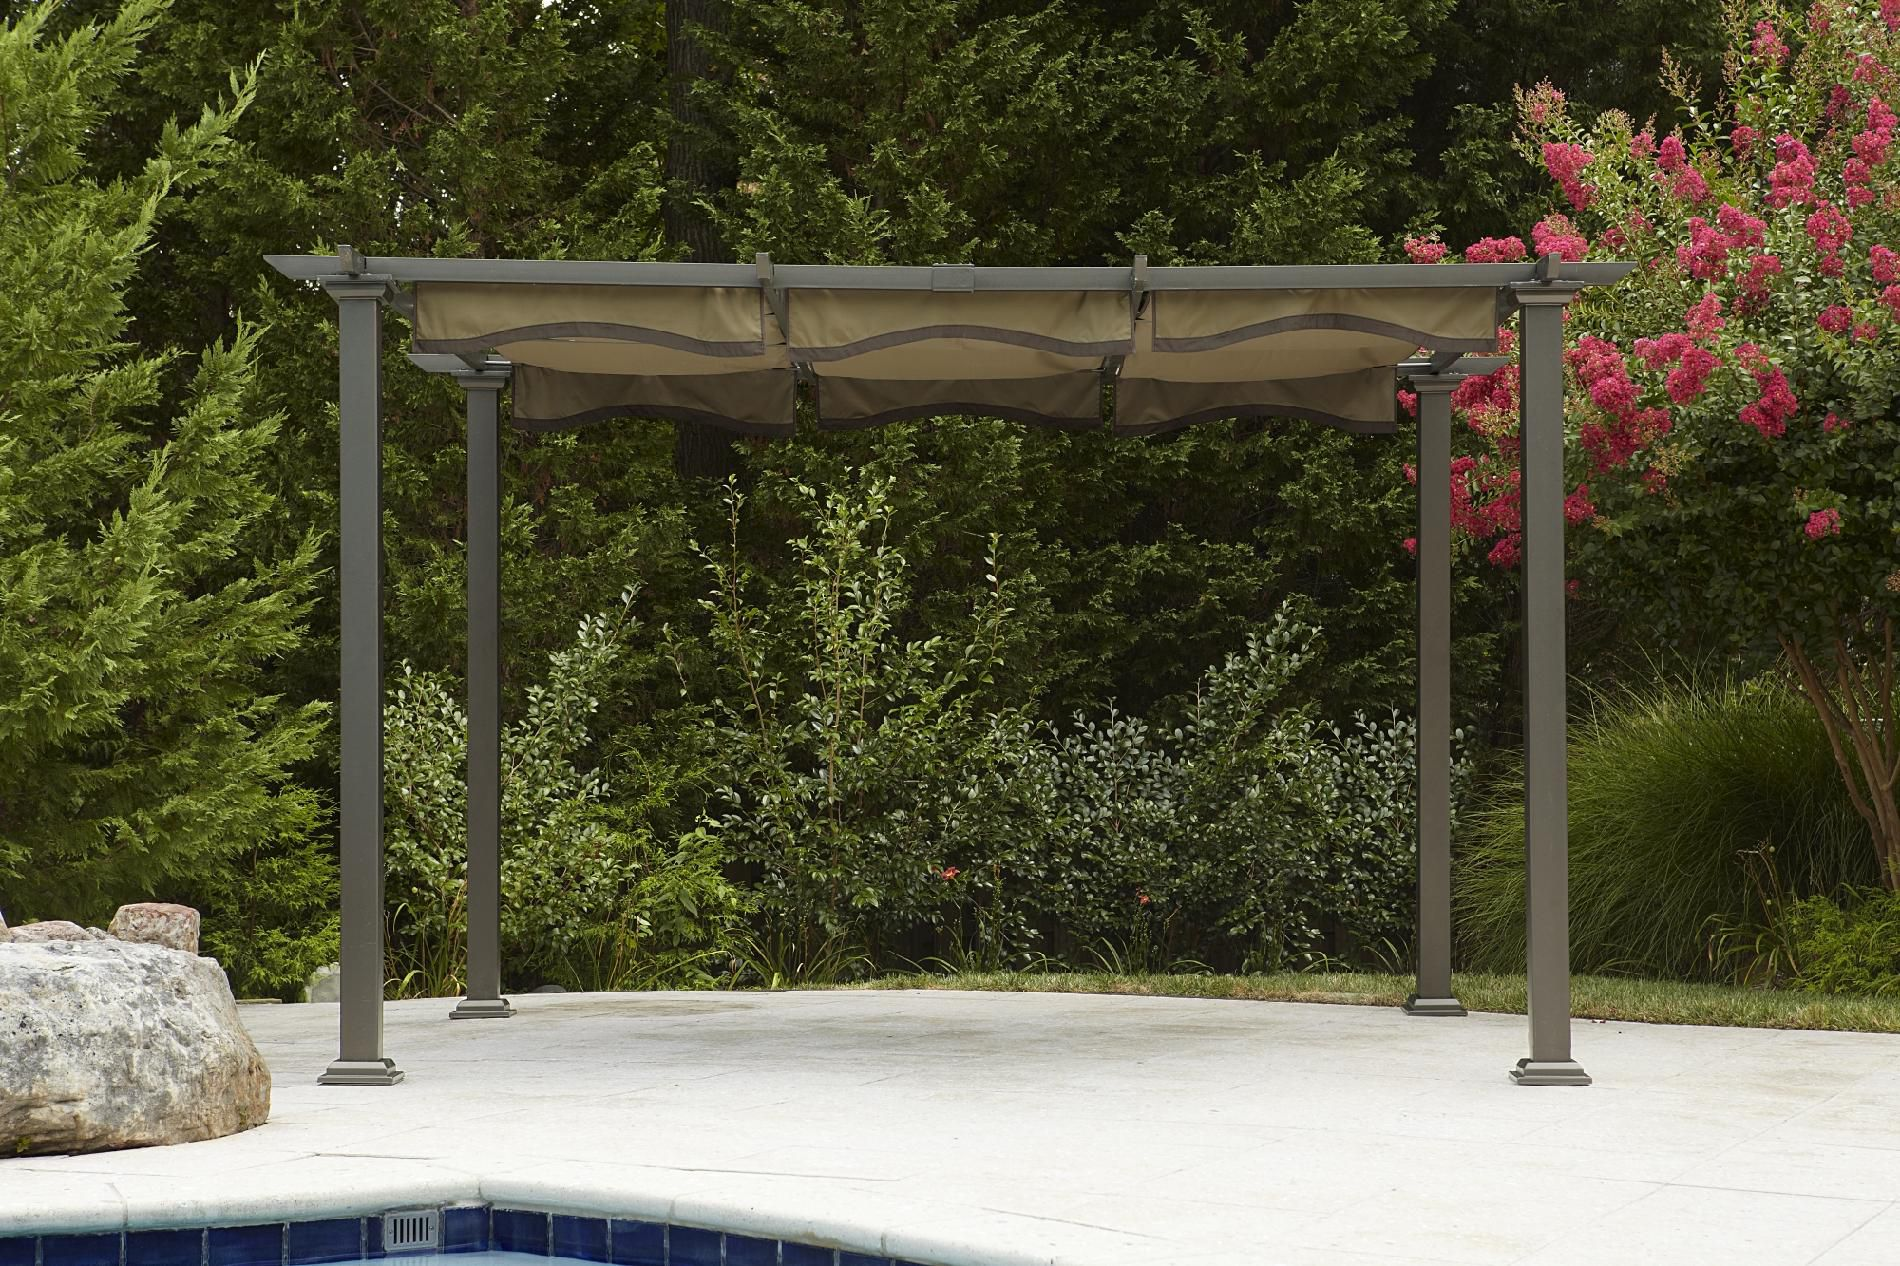 Garden Oasis Pergola with Canopy*